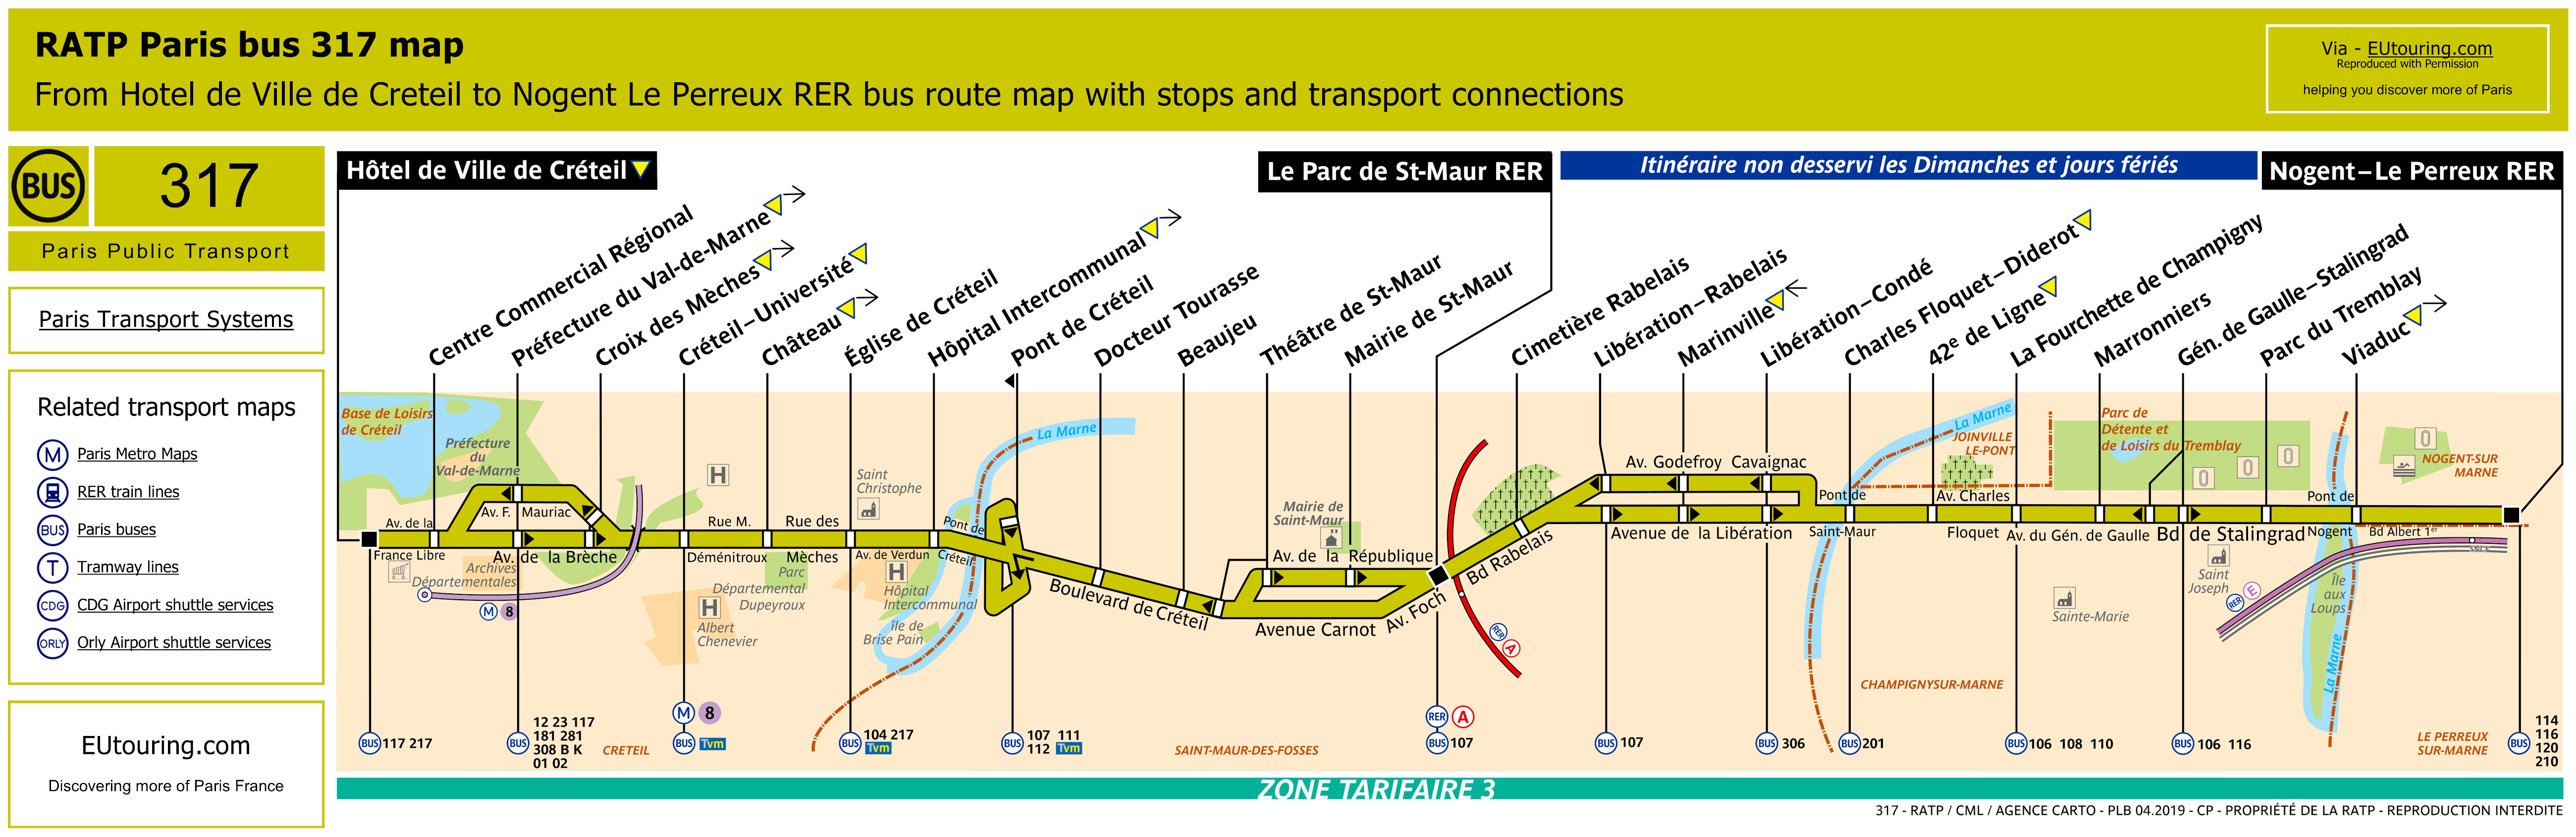 ratp route maps for paris bus lines 310 through to 319